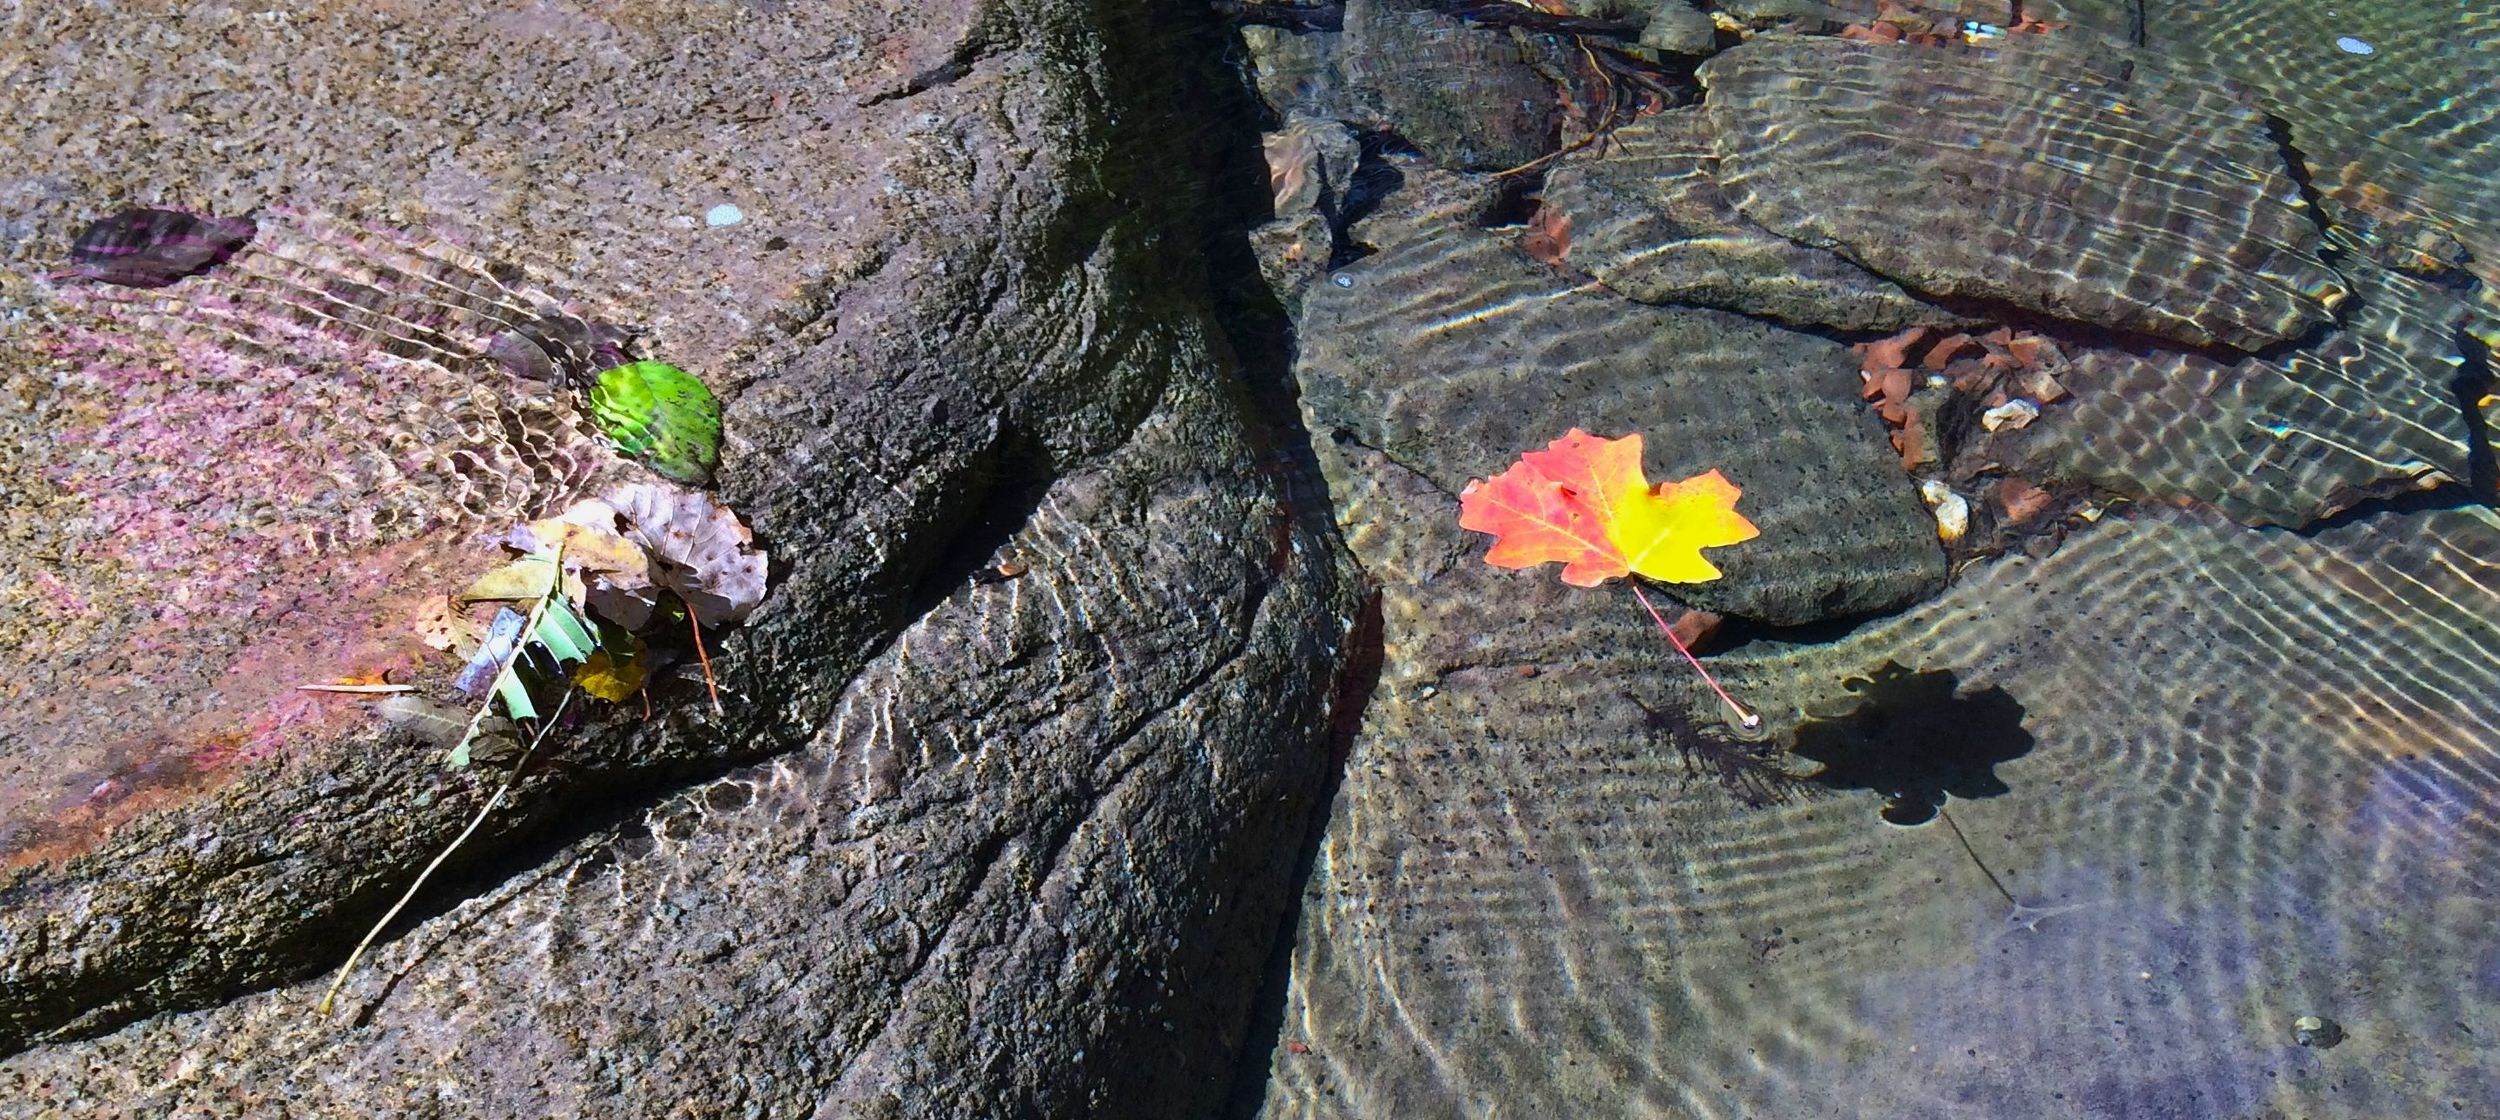 Fall leaves float in the west fork of Oak Creek, near Sedona, Arizona. Photo taken with an iPhone 5s.